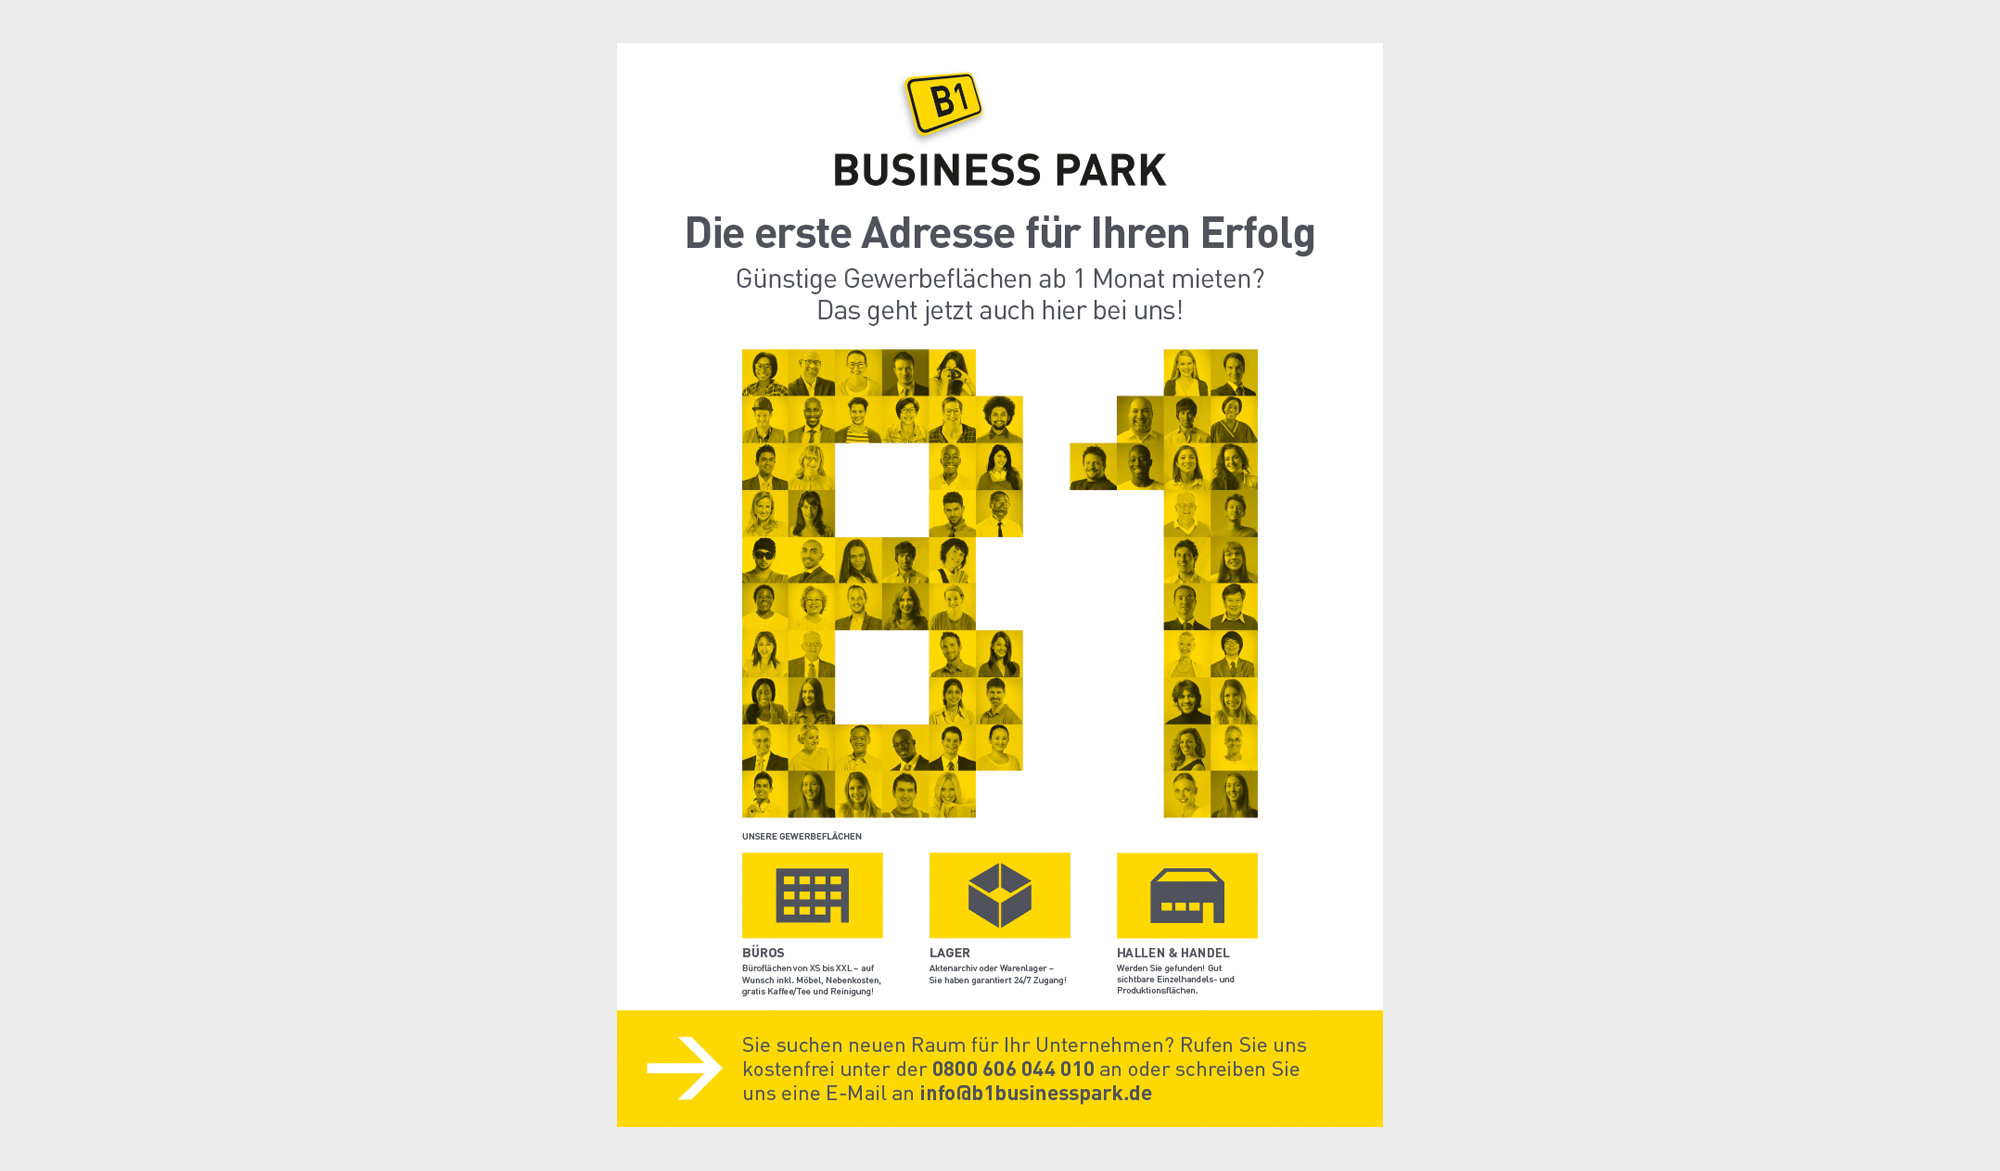 B1 Business Park poster